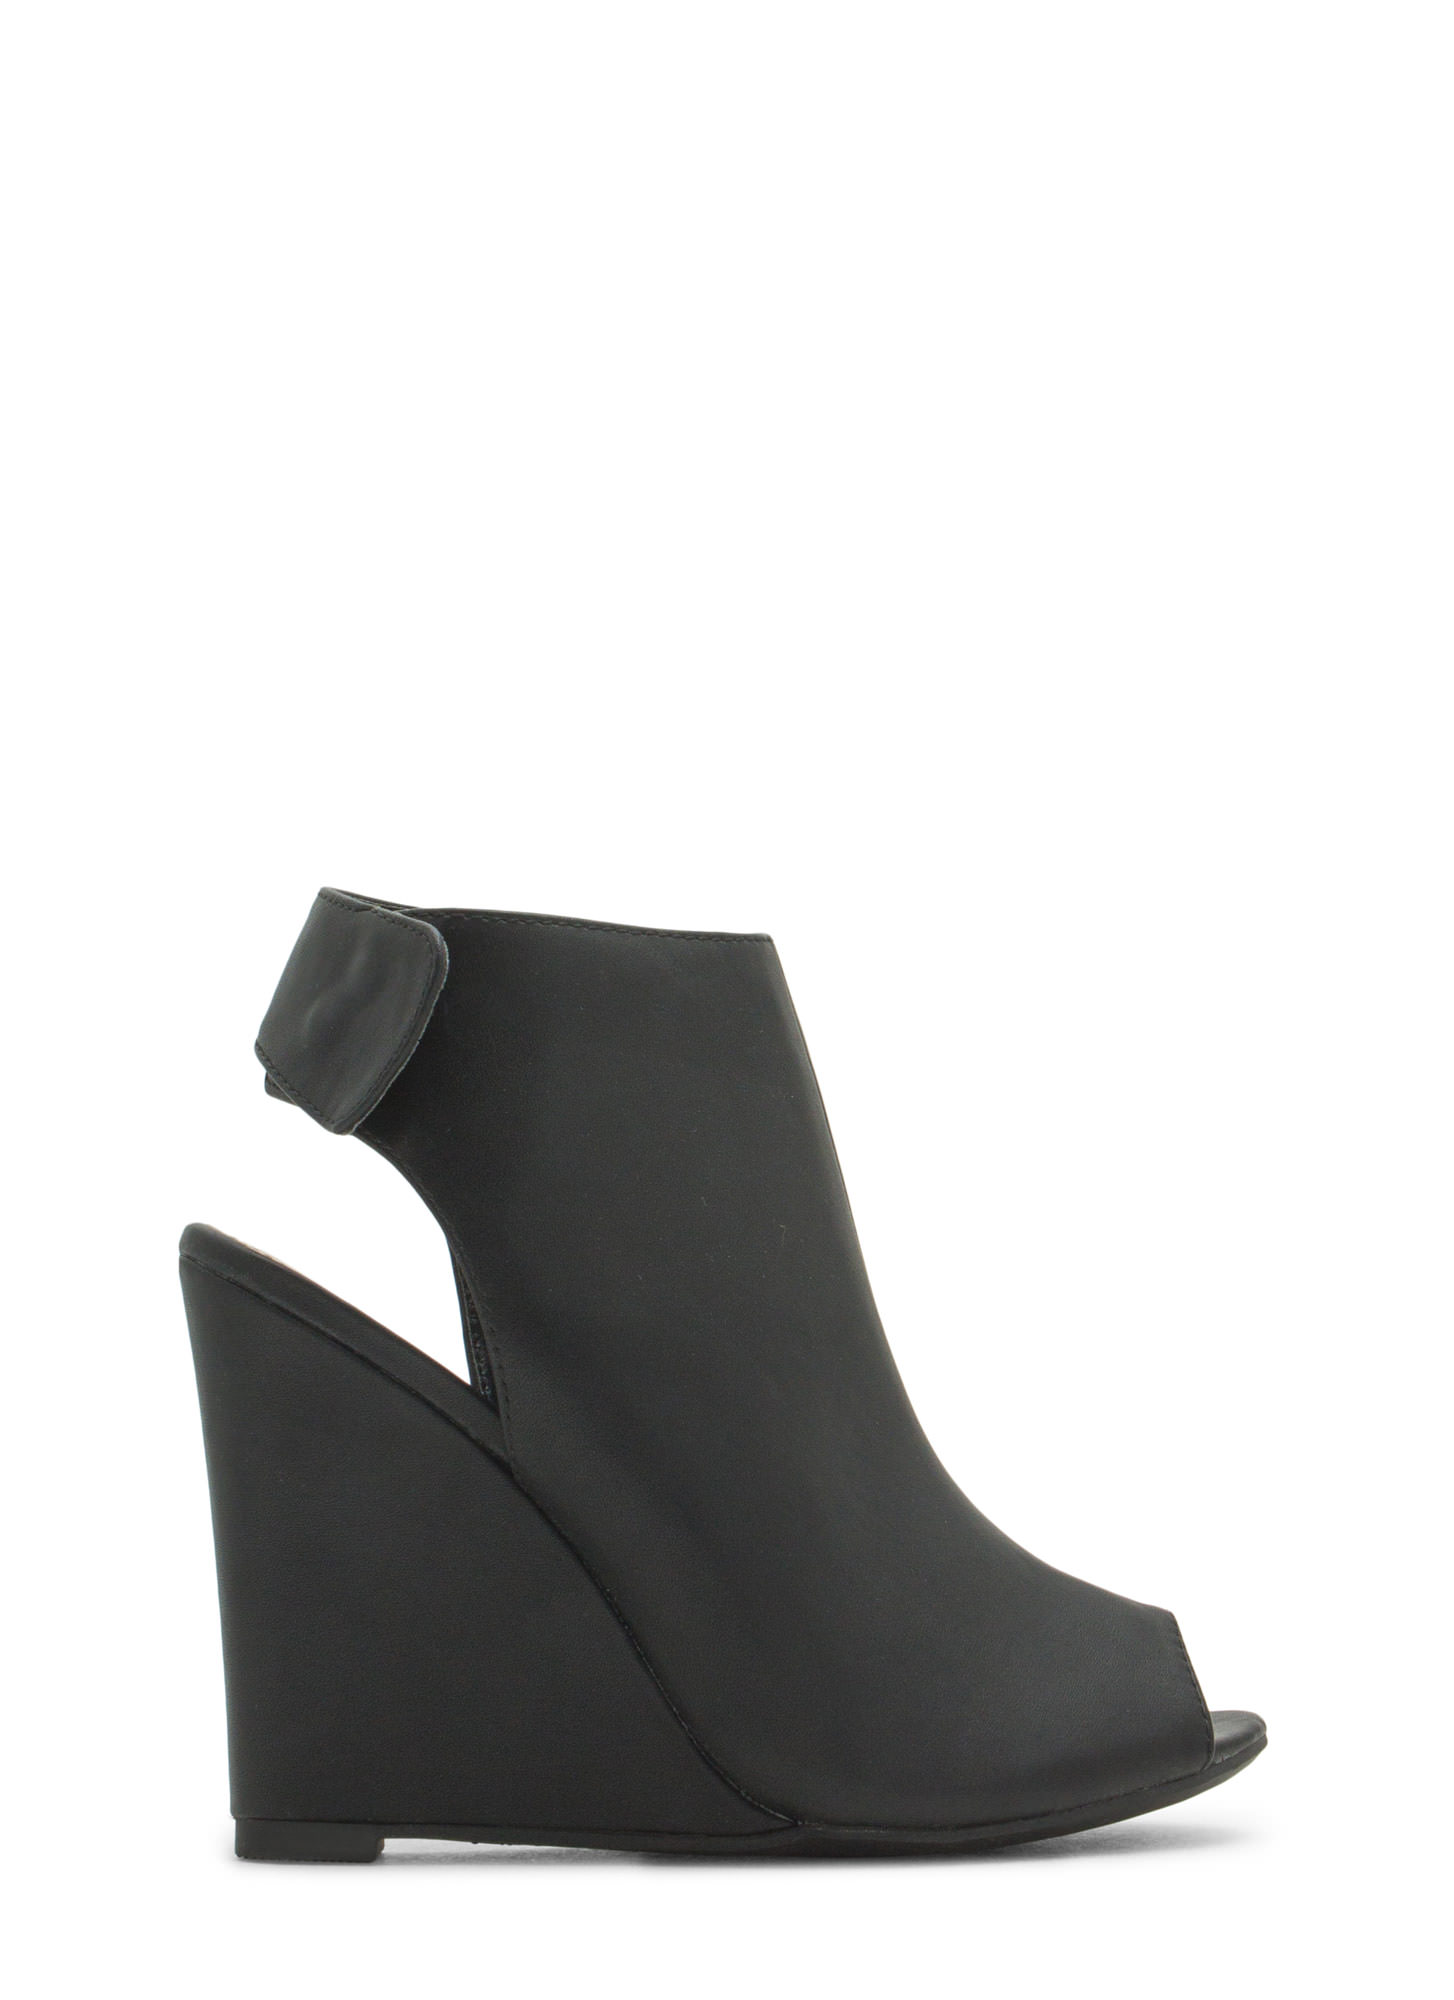 Haute 'N Chic Faux Leather Wedge Booties BLACK